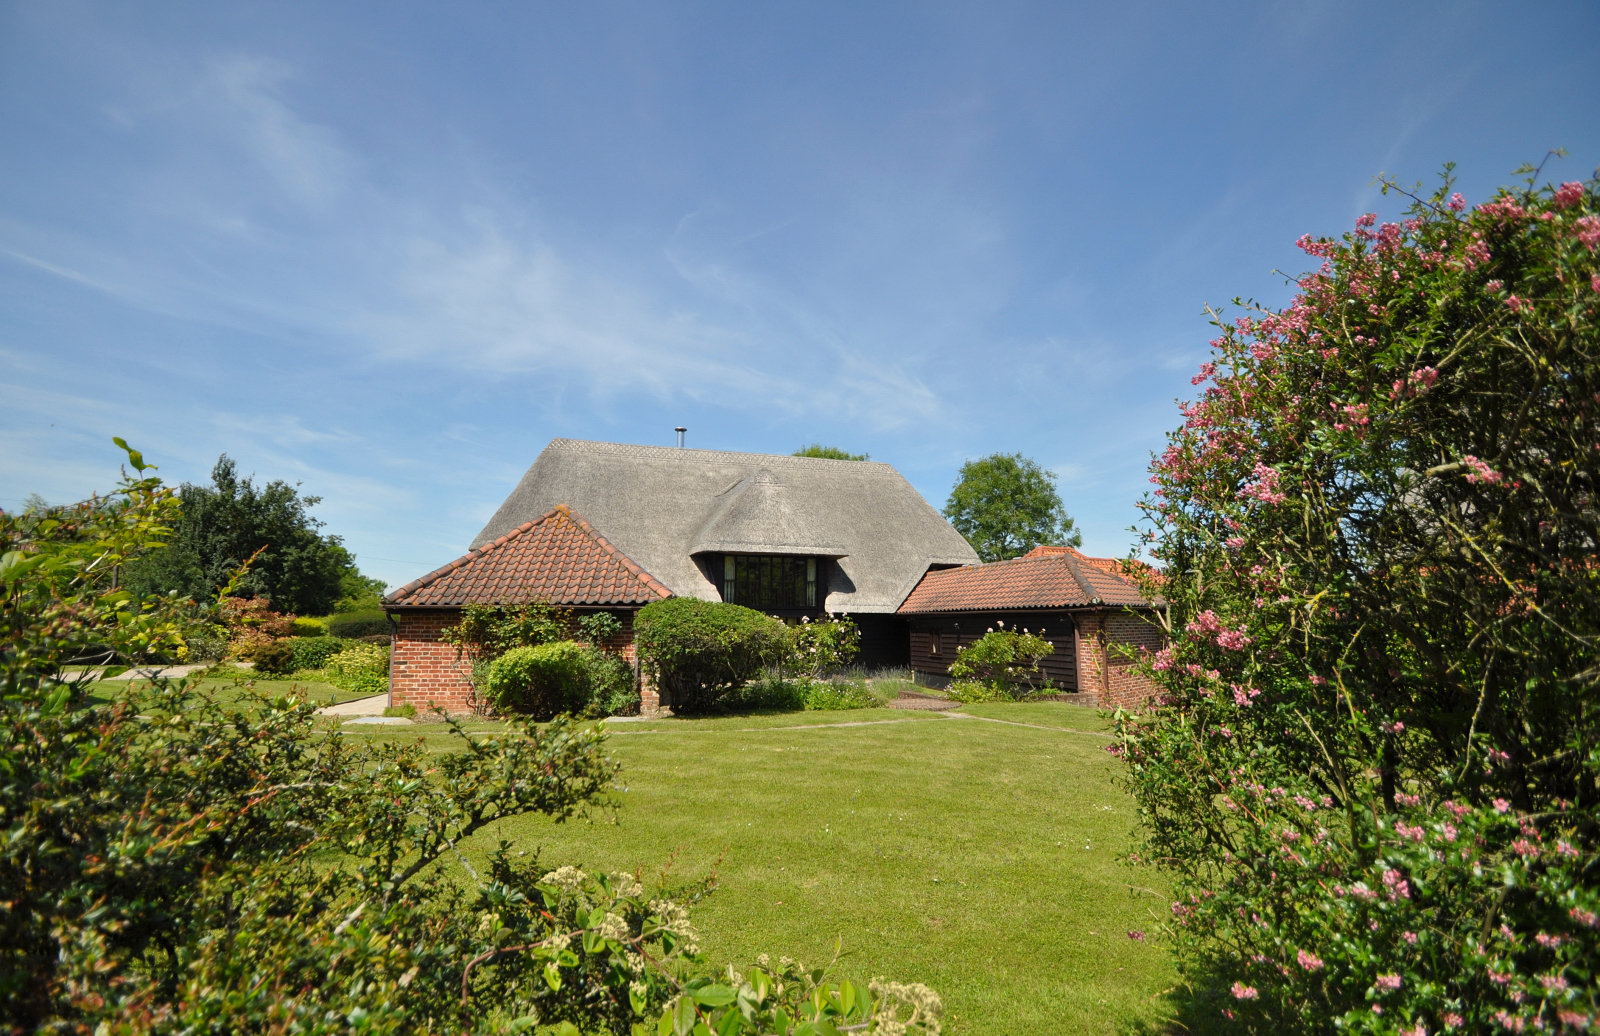 Ipswich Property For Sale With Annexe